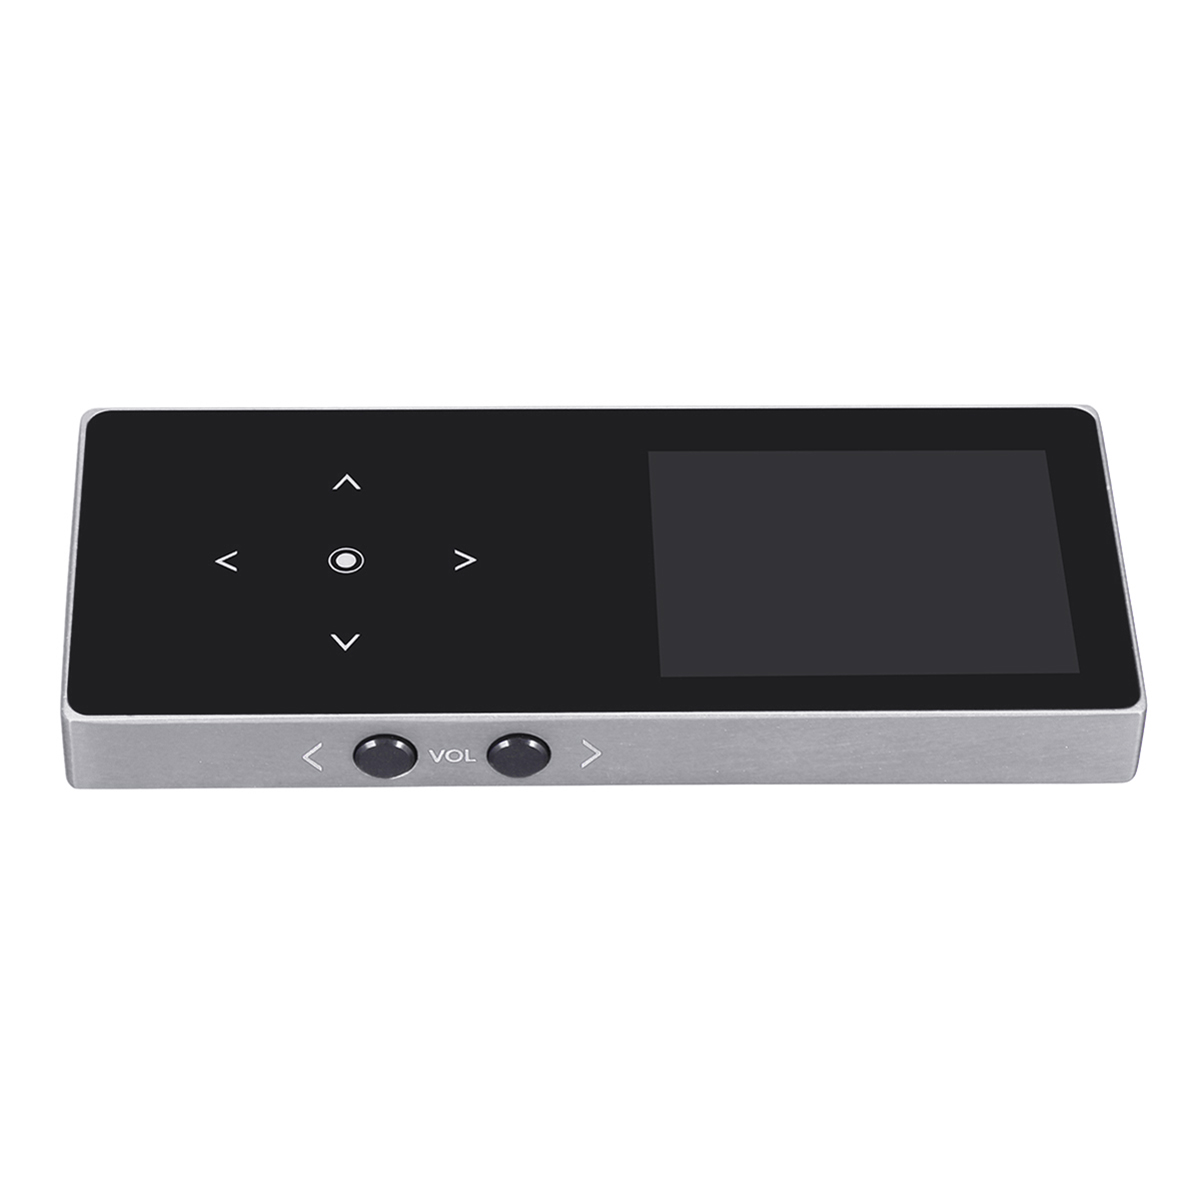 Benjie 16G Bluetooth MP3 Lossless Music Hifi Player MP4 Support Touch Screen Video SD Card